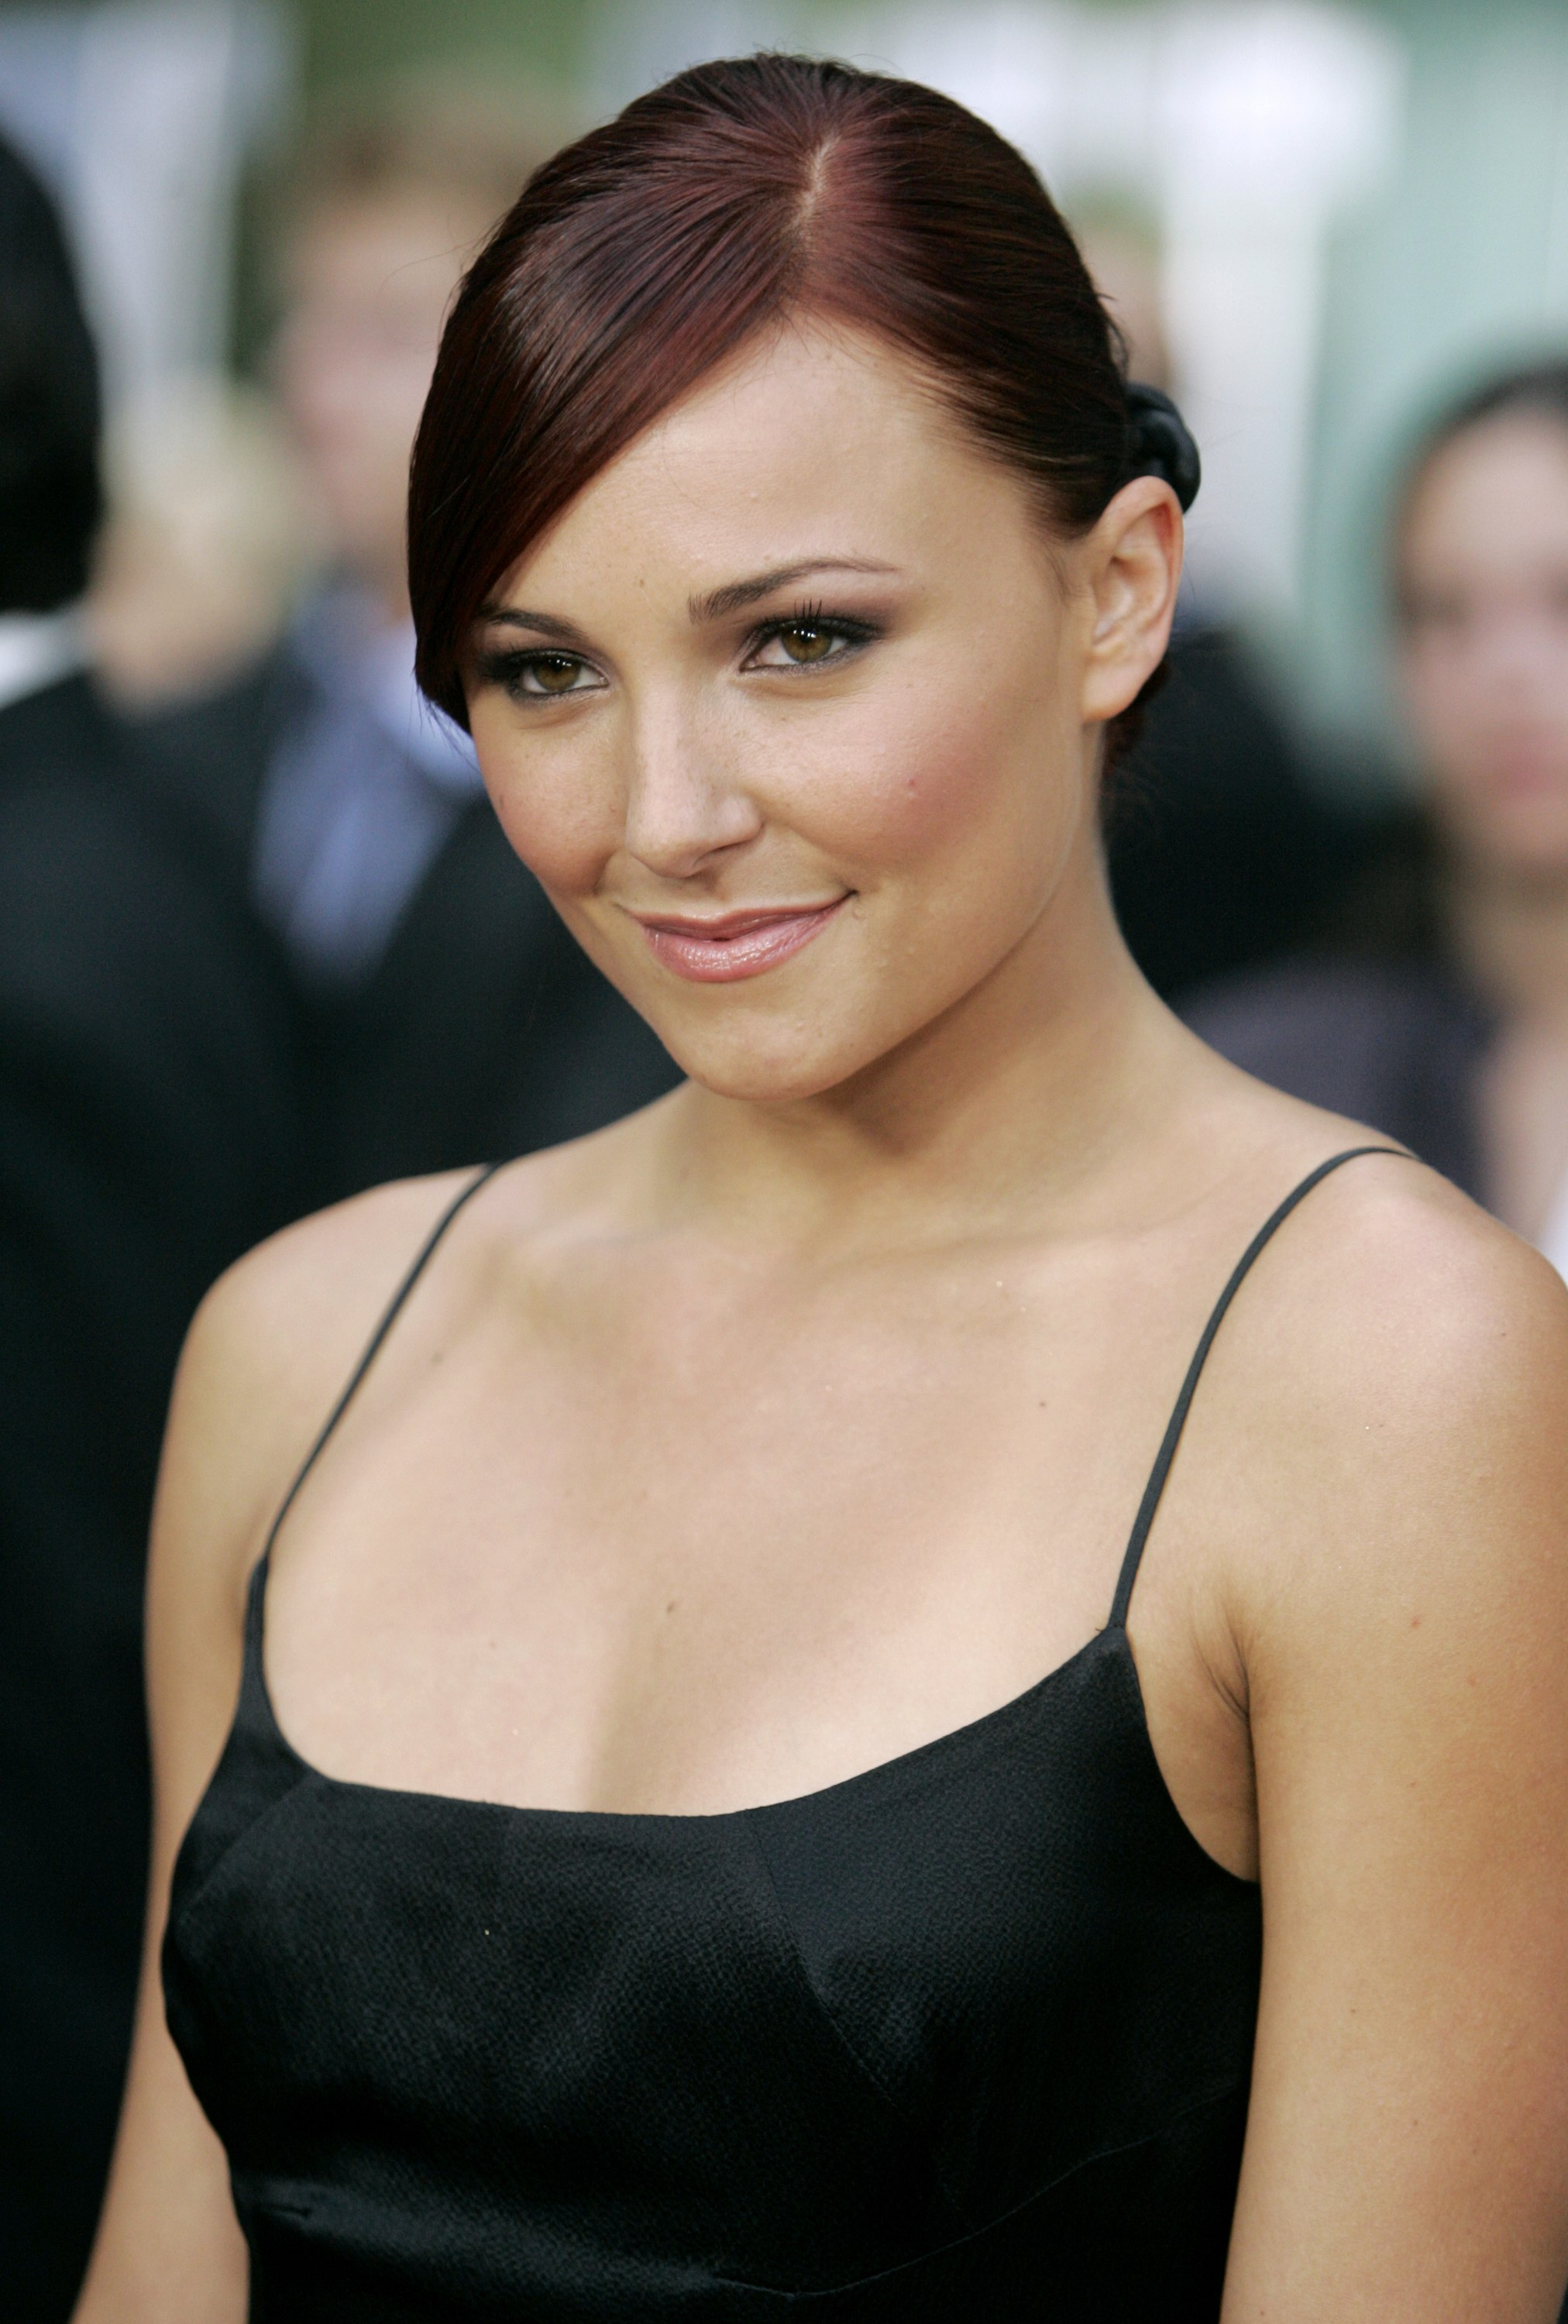 briana evigan photo 20 of 86 pics wallpaper   photo